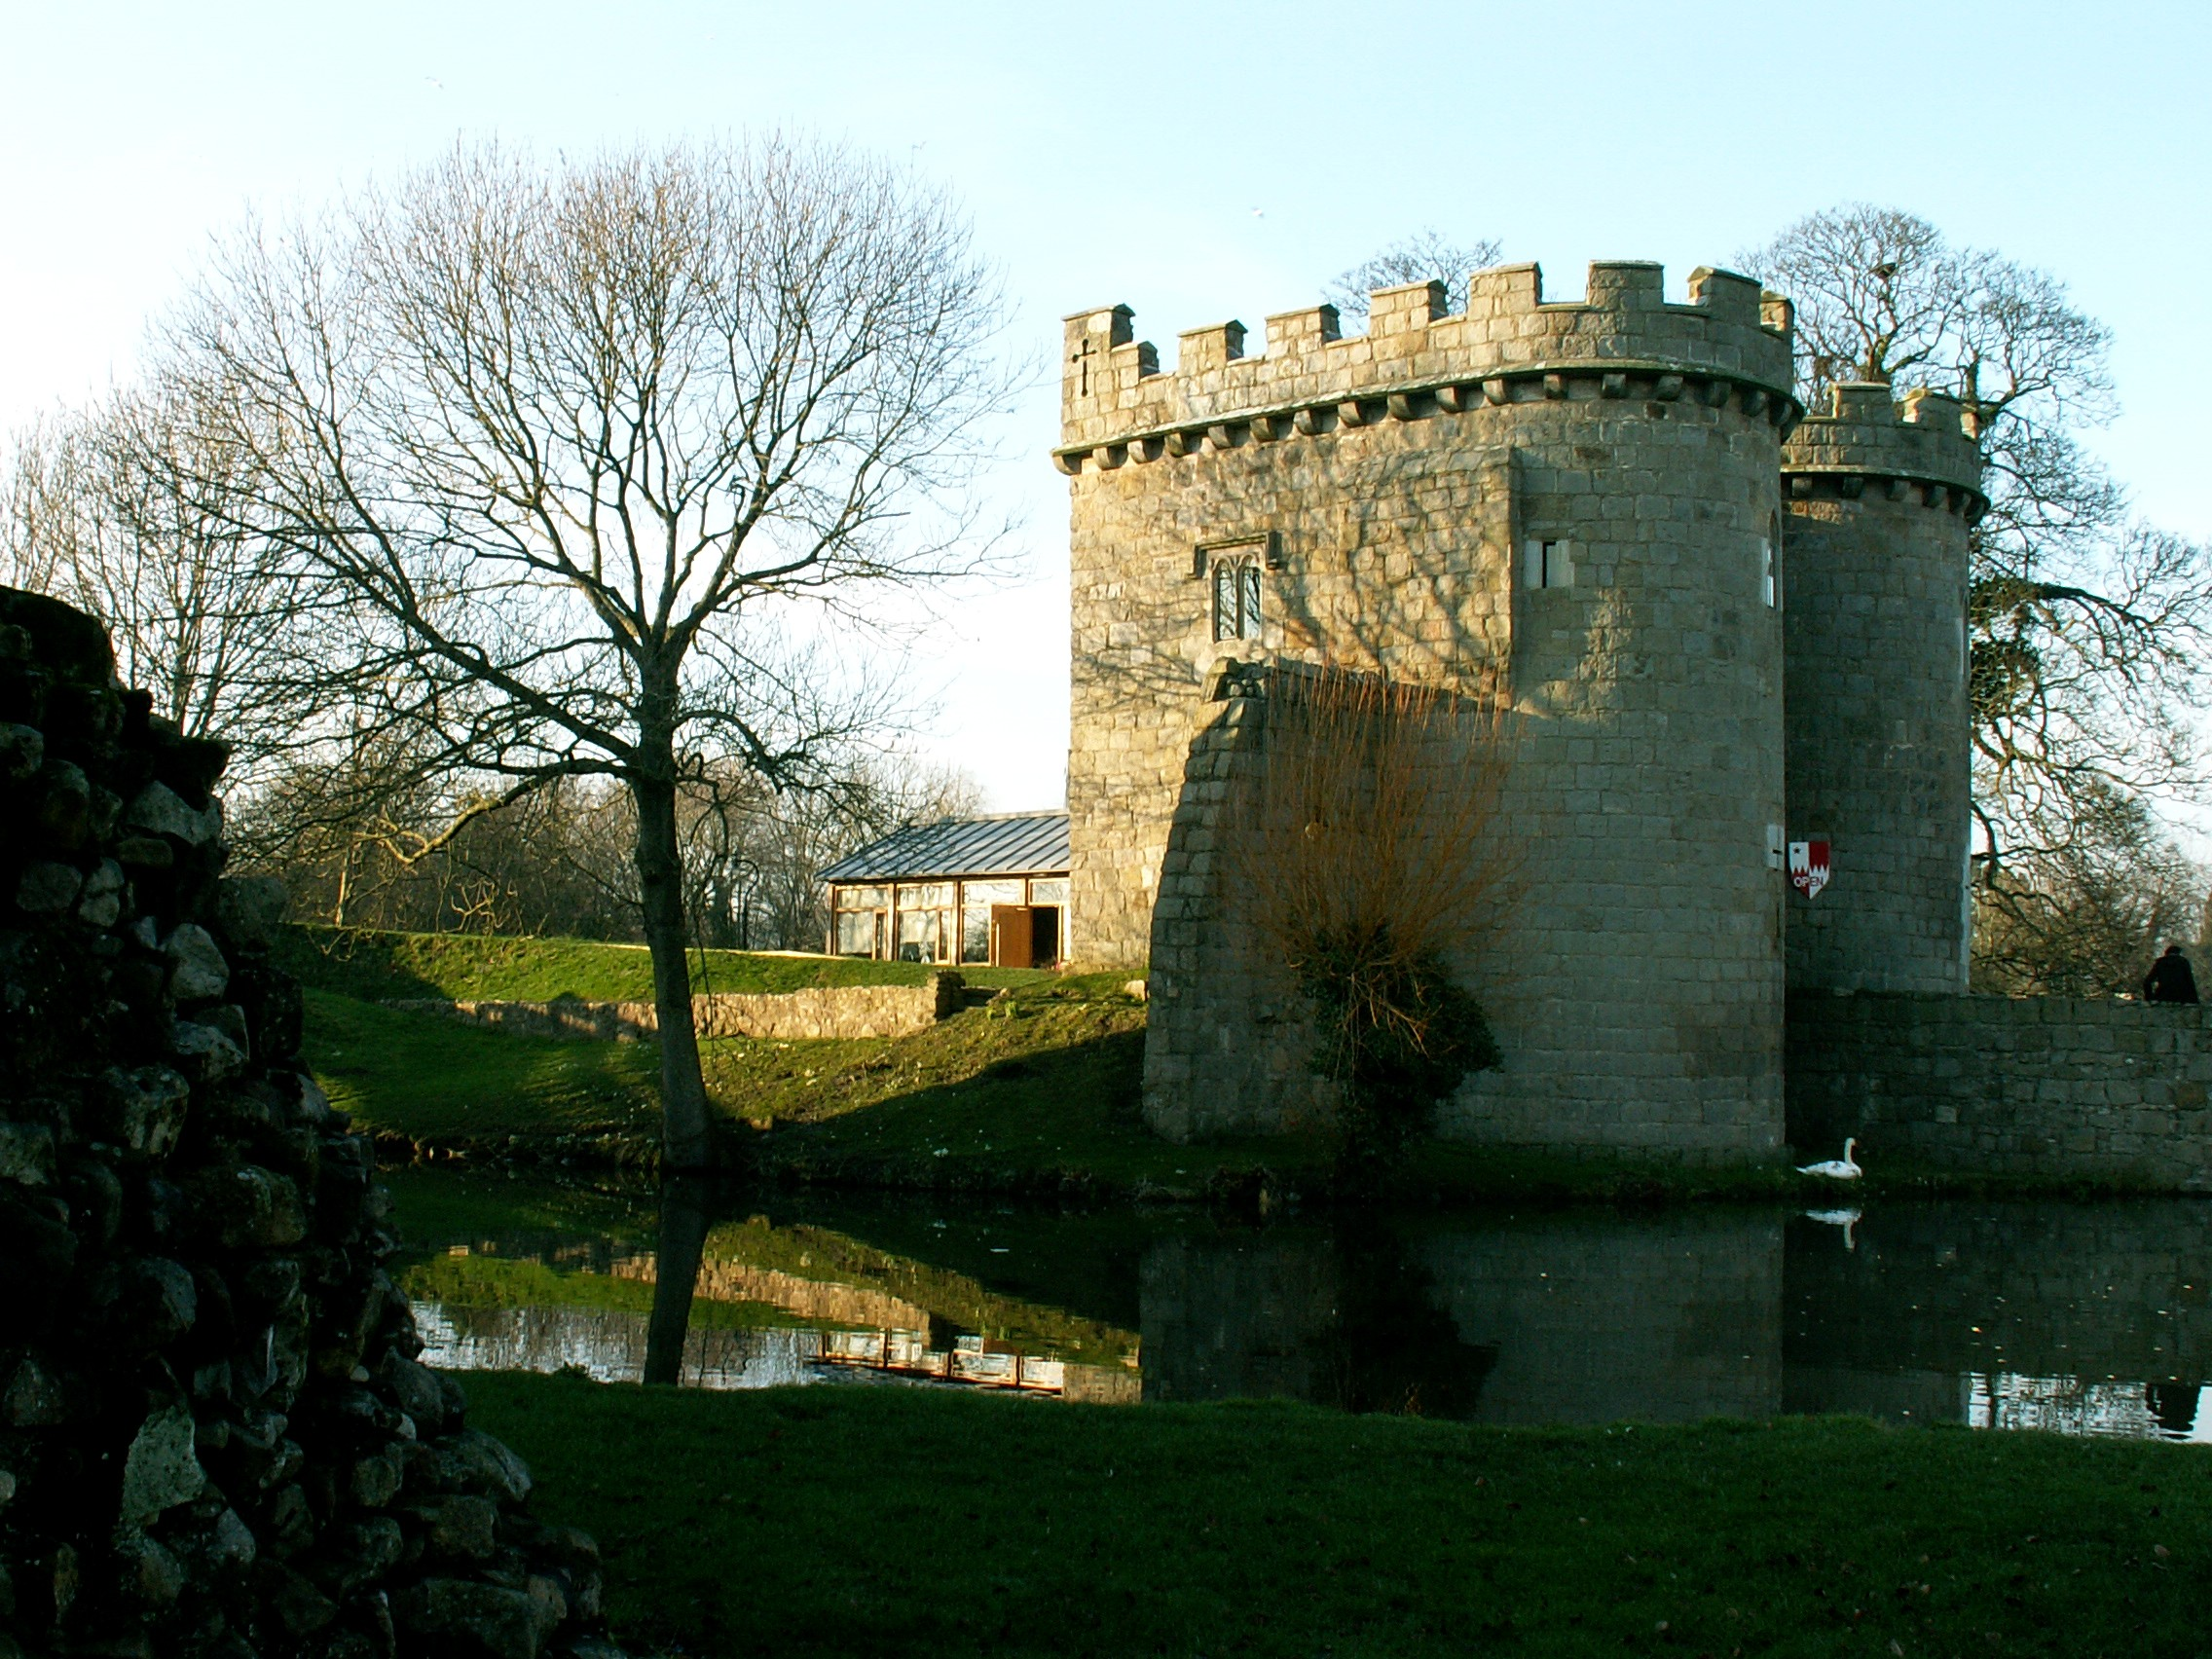 Whittington Castle in the village of Whittington, North Shropshire